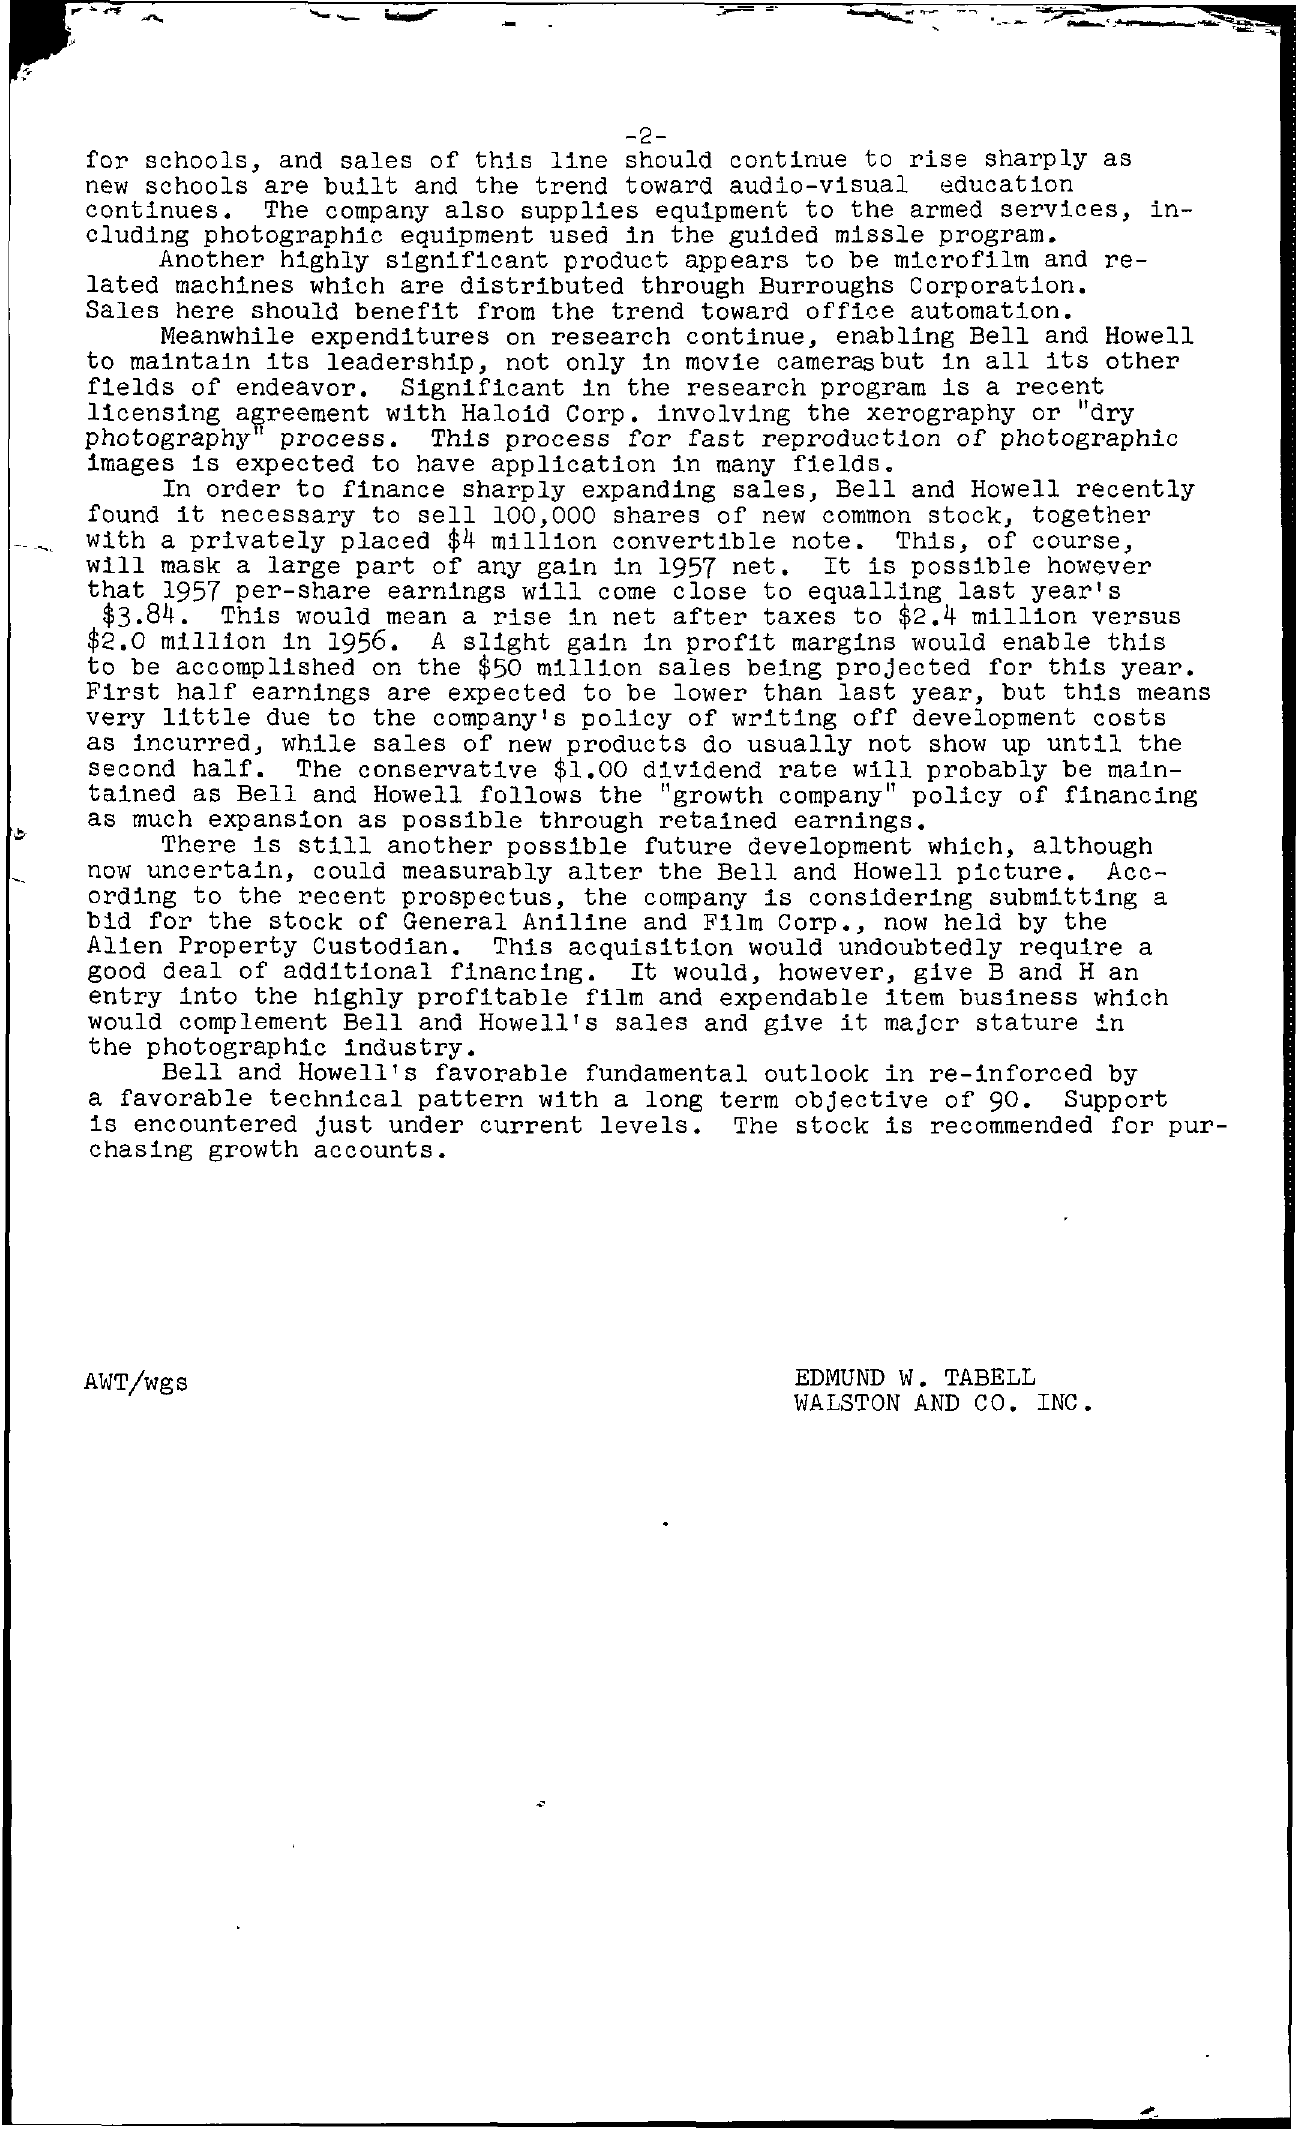 Tabell's Market Letter - June 28, 1957 page 2